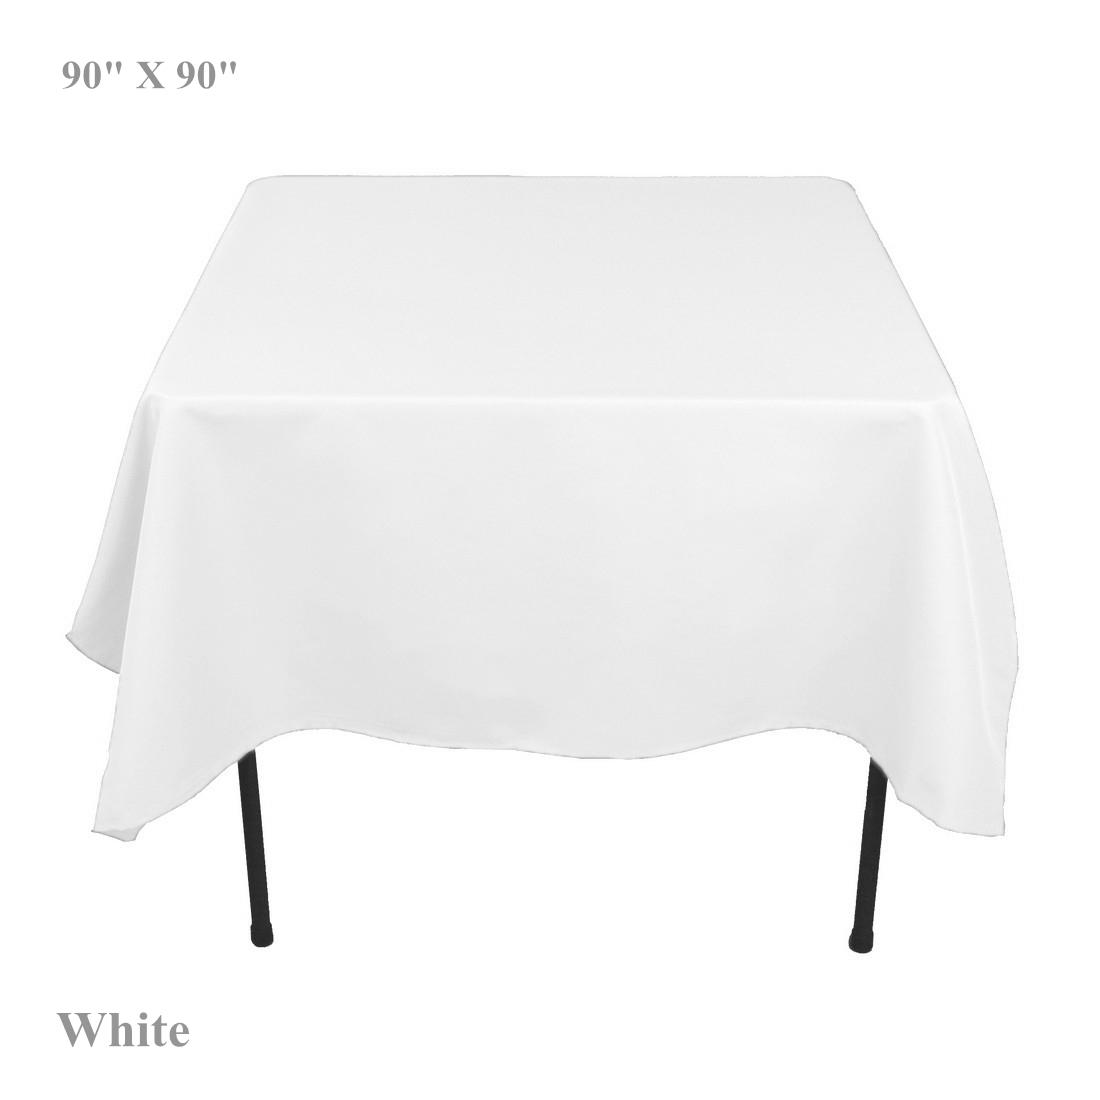 Christmas Tablecloth 90 X 90 Square Polyester White Ivory  : christmas tablecloth 90 x 90 square polyester from www.dhgate.com size 1100 x 1100 jpeg 21kB